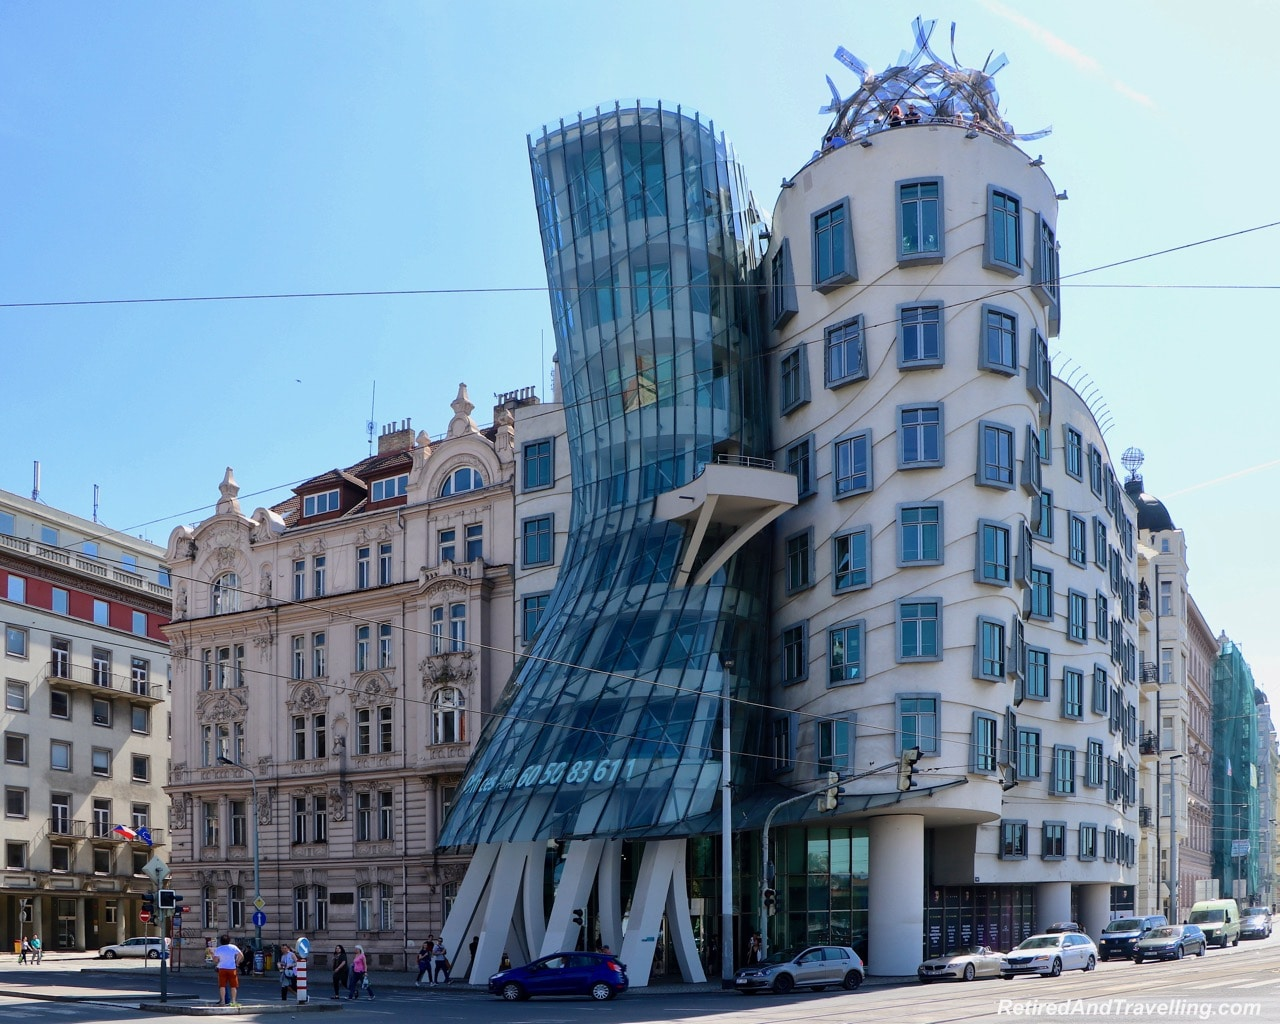 Dancing House Buildings and Architecture - Things To Do In Prague.jpg